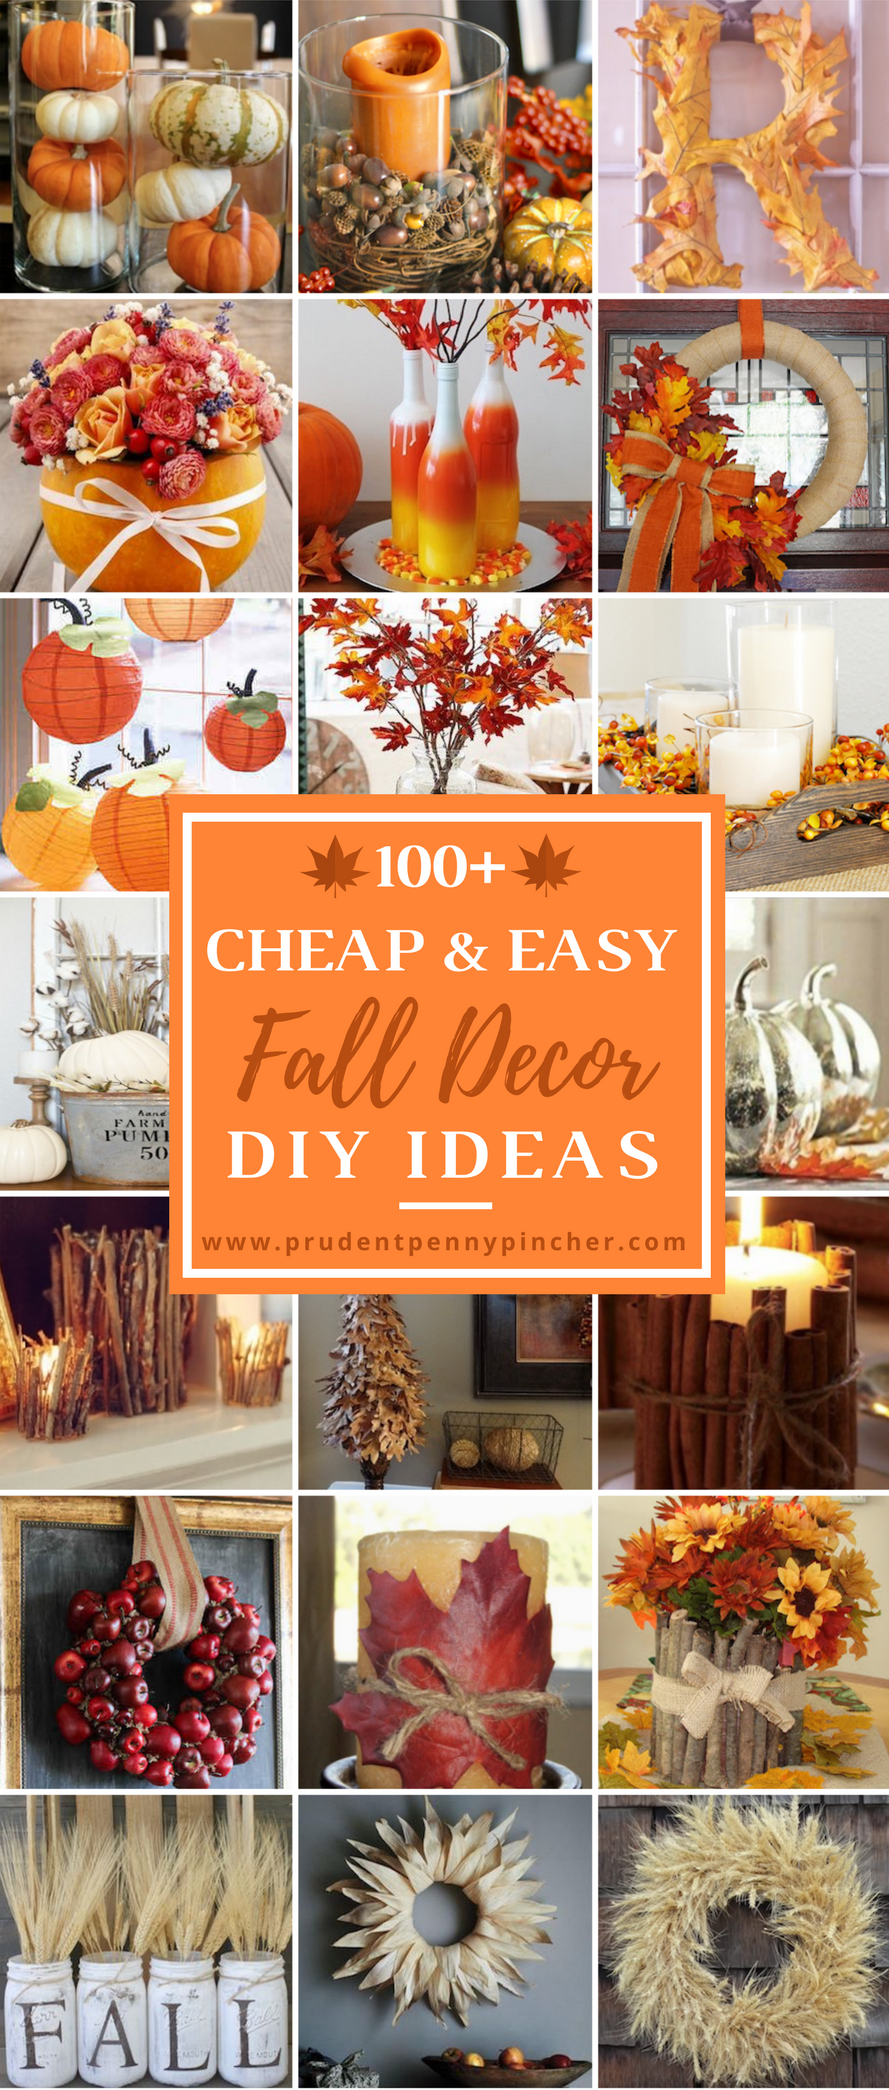 Charming Diy Fall Decor Part - 12: Fall Is My Favorite Time Of Year U2013 Pumpkin Everything, Cool Weather, Autumn  Foliage, And Fun Fall Activities. So, Obviously, I LOVE Decorating For Fall.